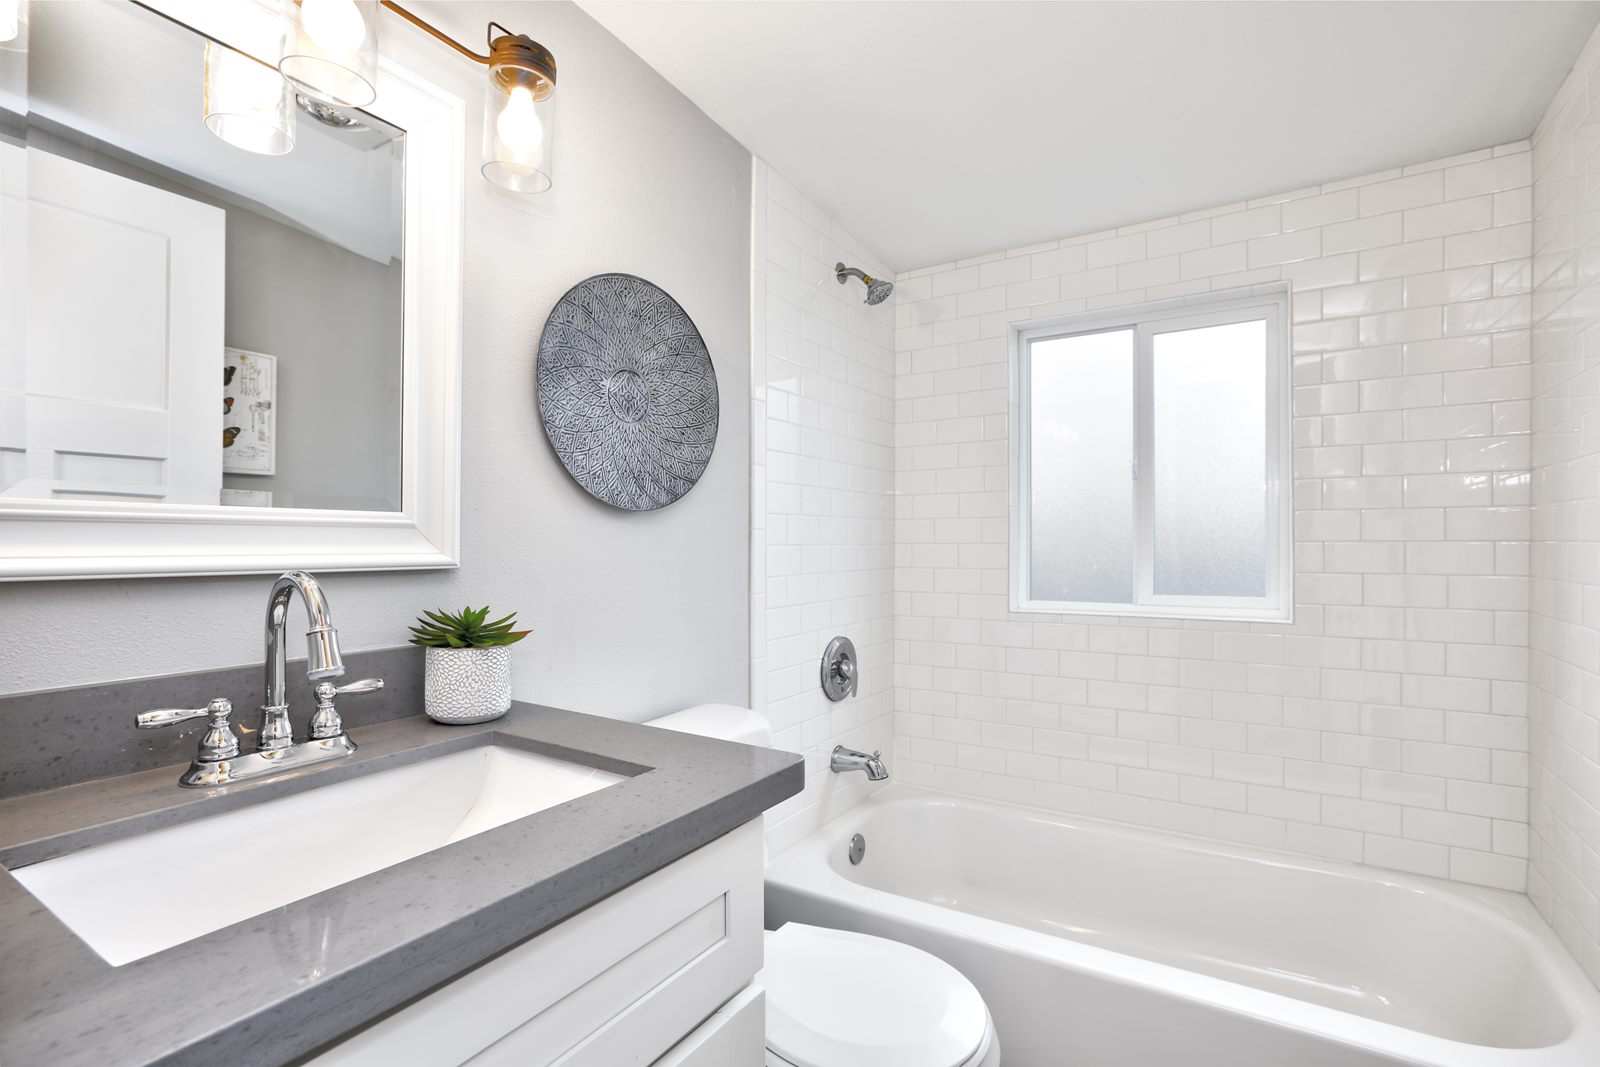 Why You Should Hire a Professional Bathroom Remodeling Company